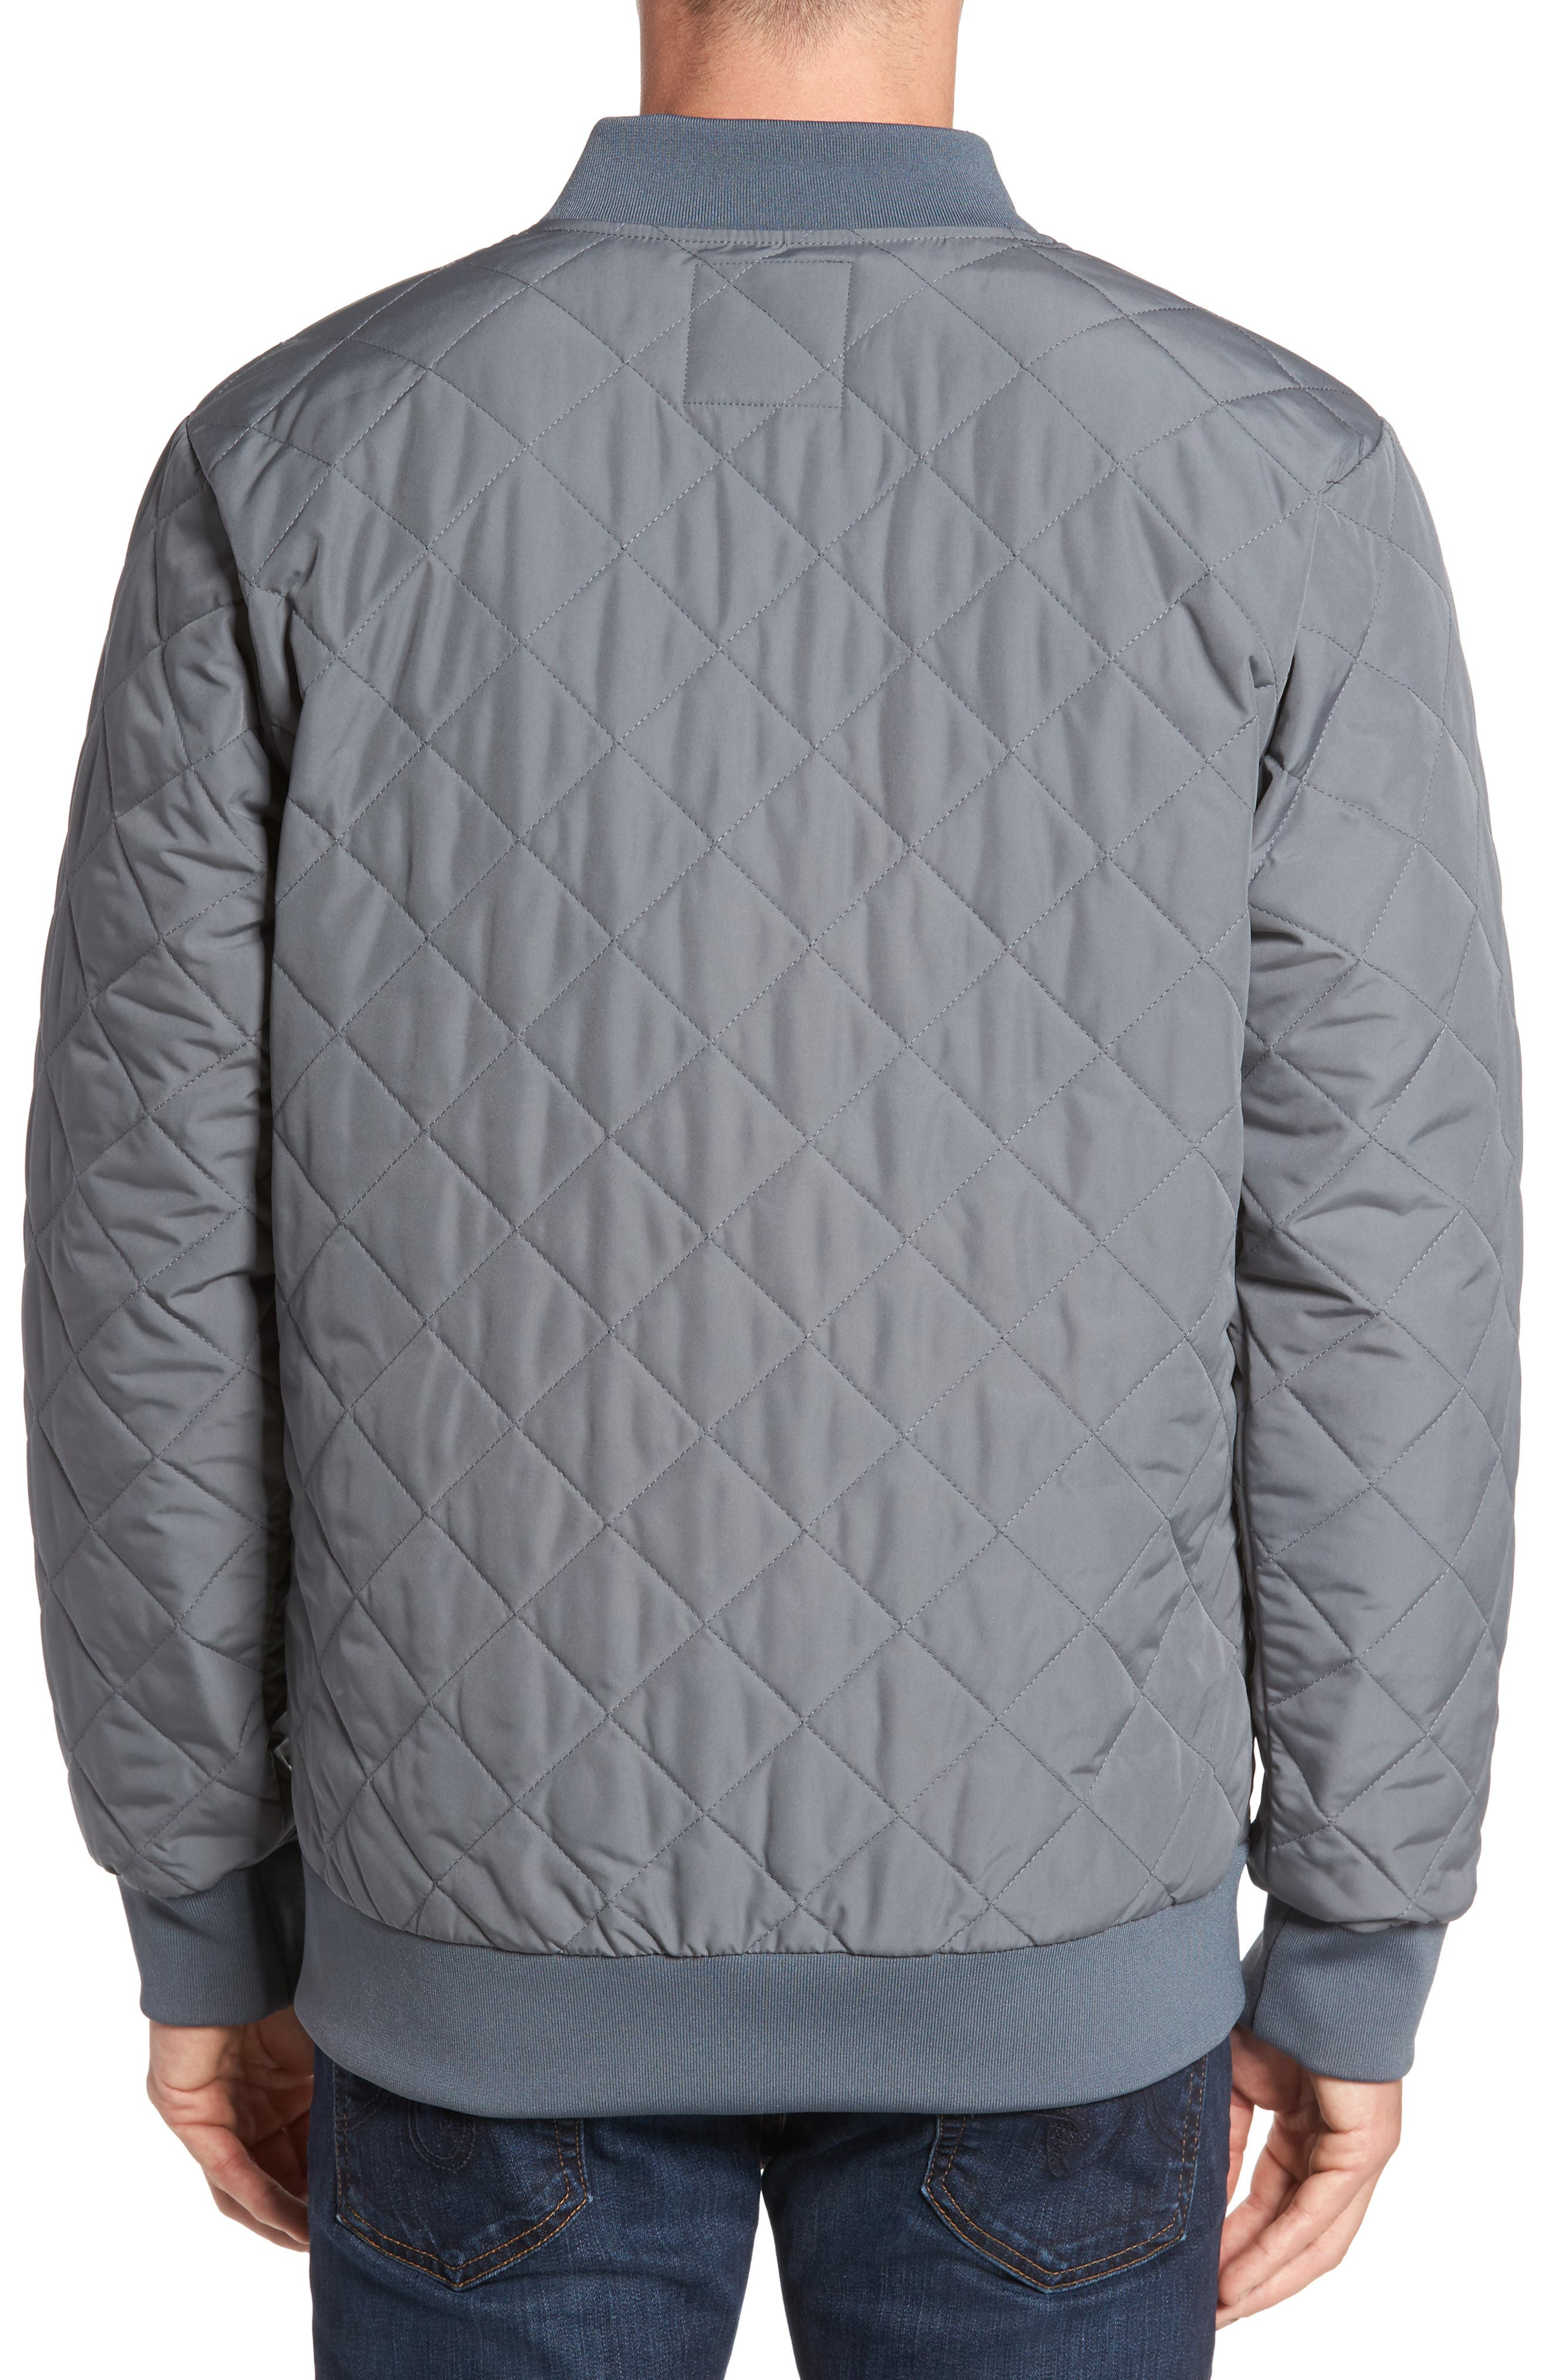 Alternate Image 2  - The North Face Distributor Quilted Bomber Jacket